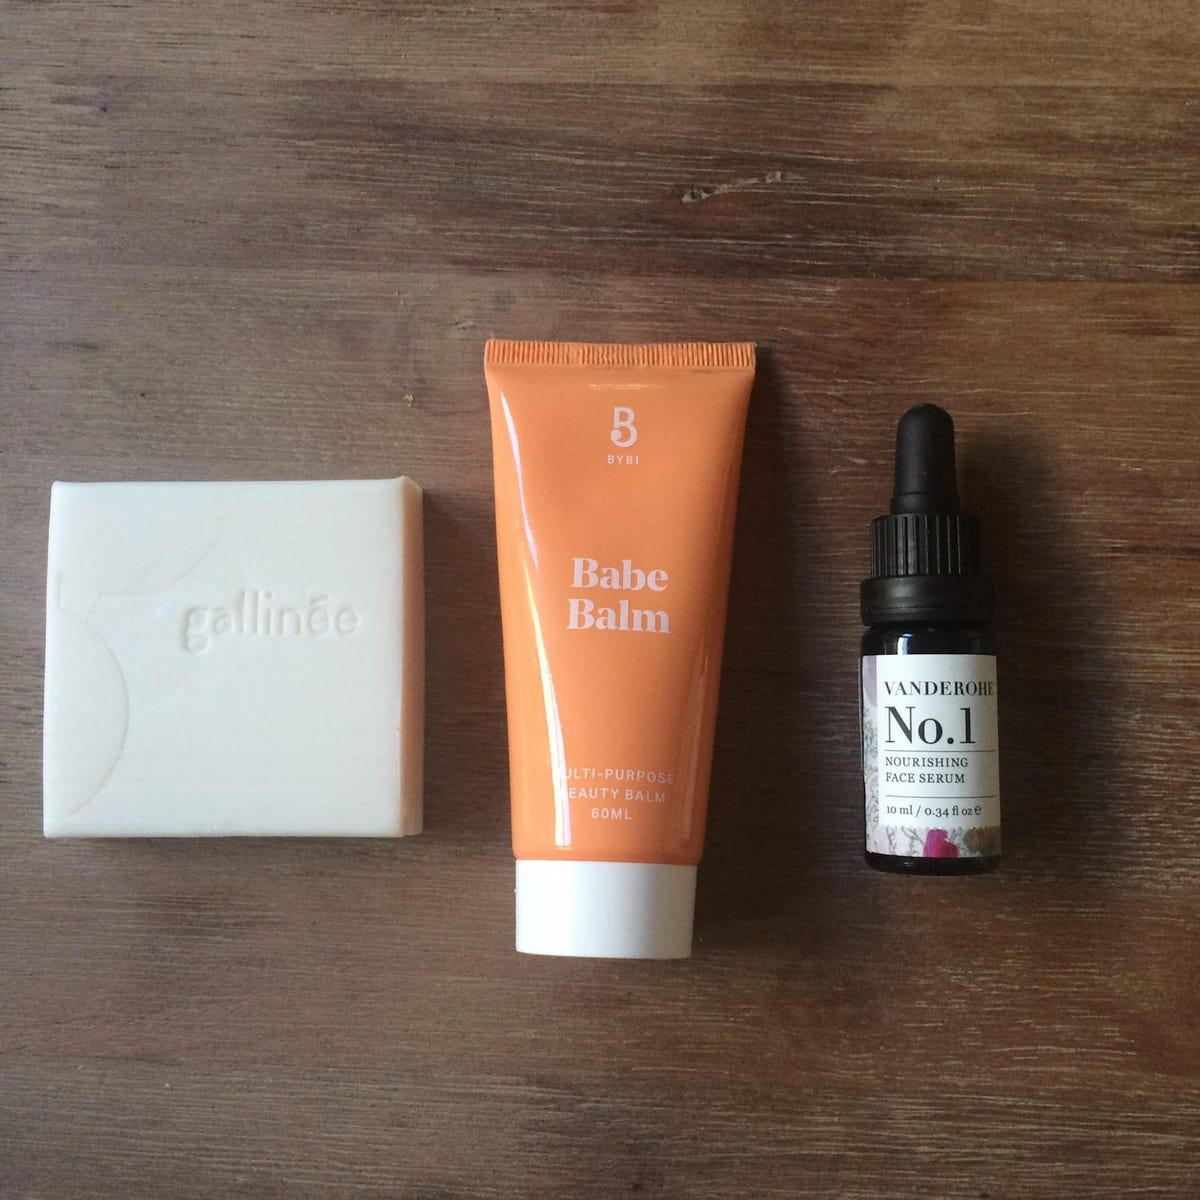 I Tried To Make My Entire Beauty Routine Plastic-Free